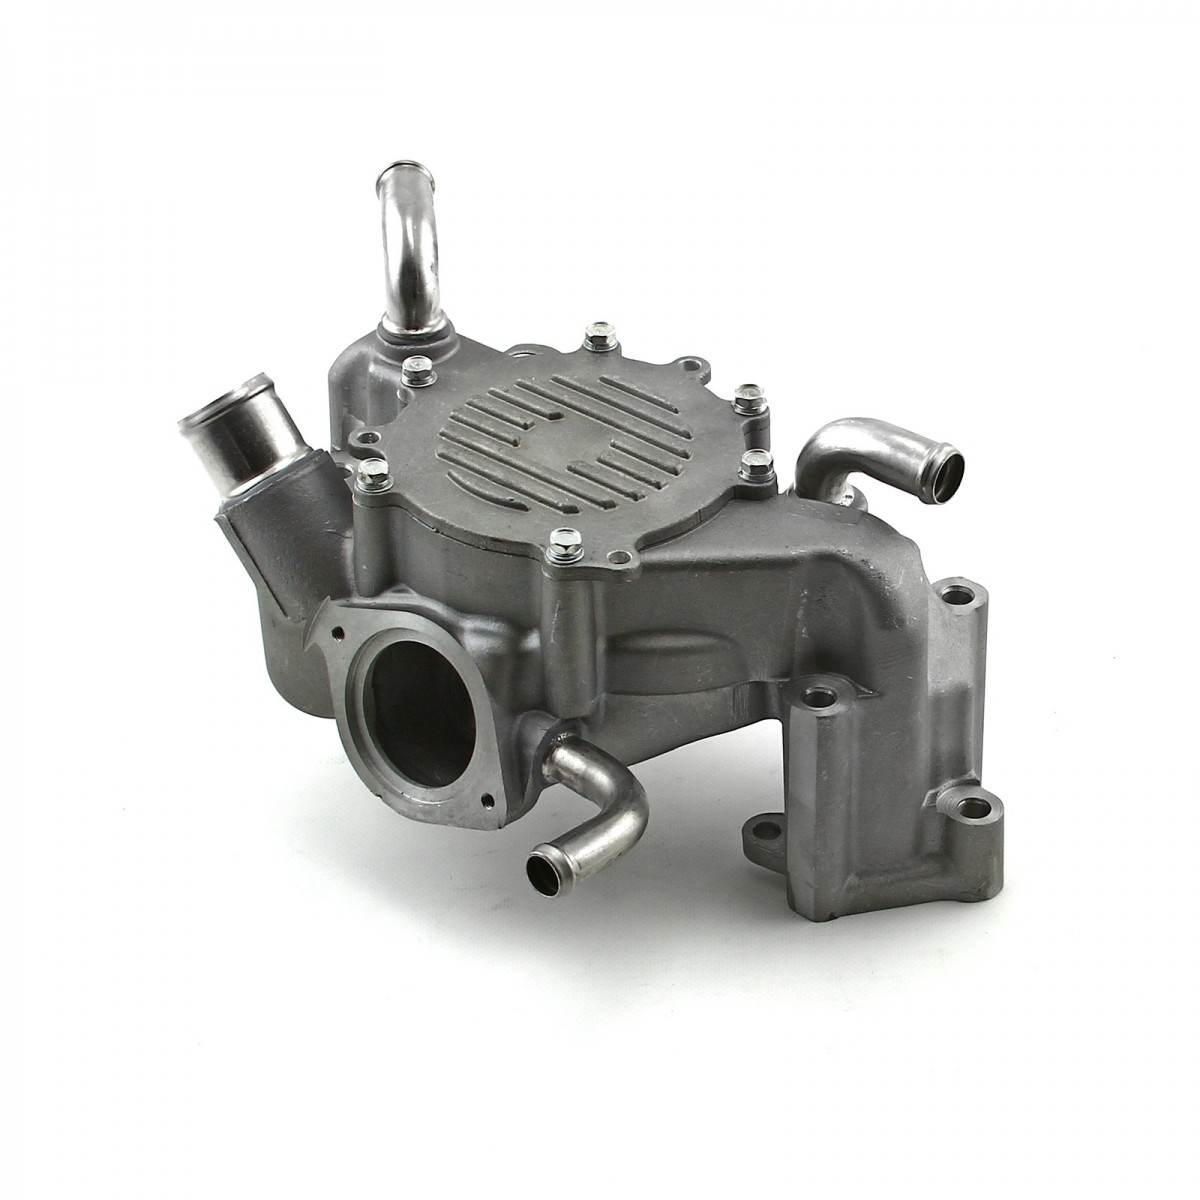 Chevy SBC 350 LT1 1993-94 High Volume Aluminum Water Pump